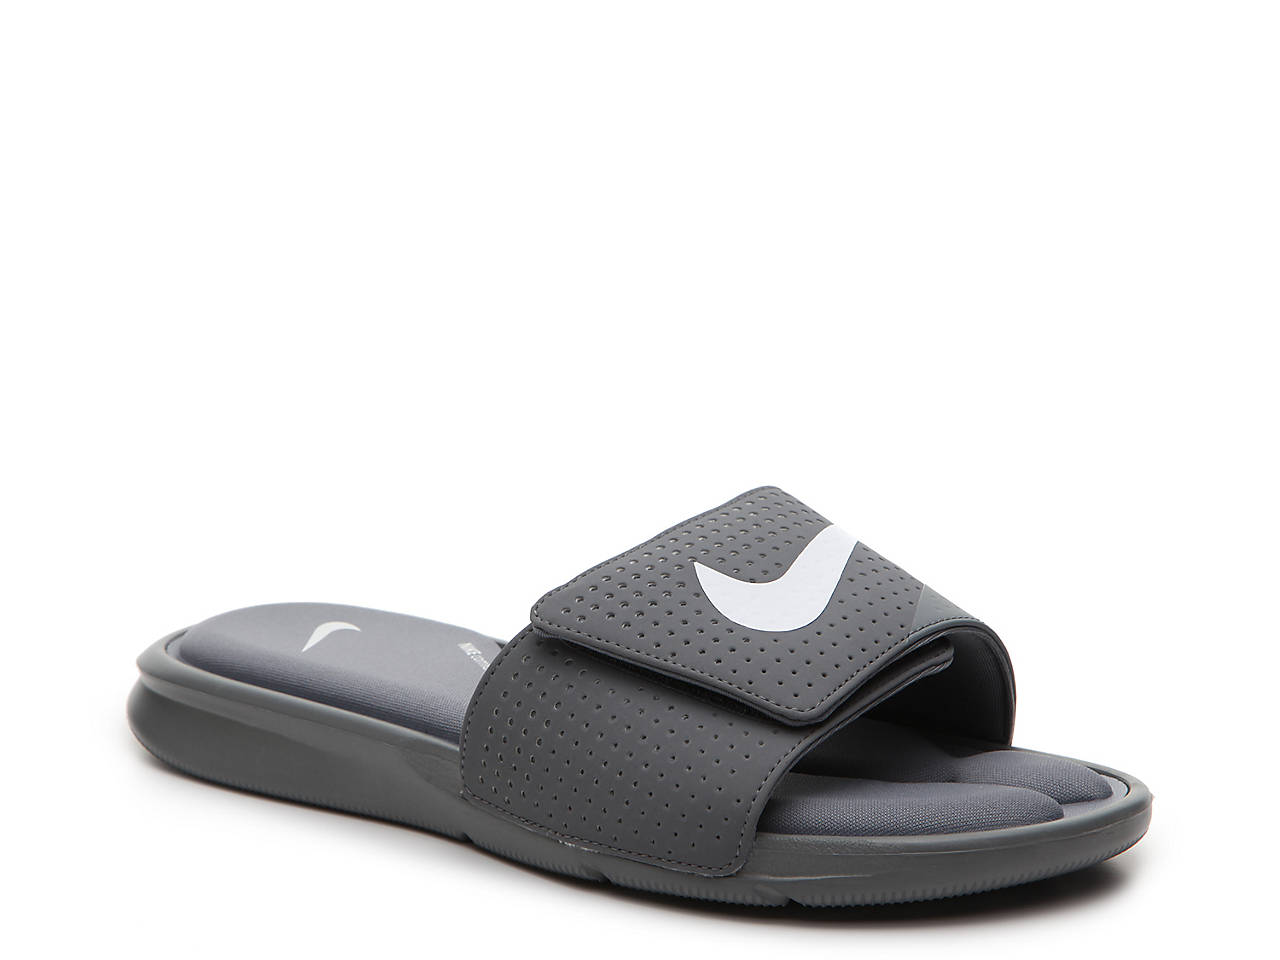 low l footbed online neo in dp comforter s sneakers cblack buy prices cacity onix india eu amazon uk cburgu mens comfort at nike adidas and men